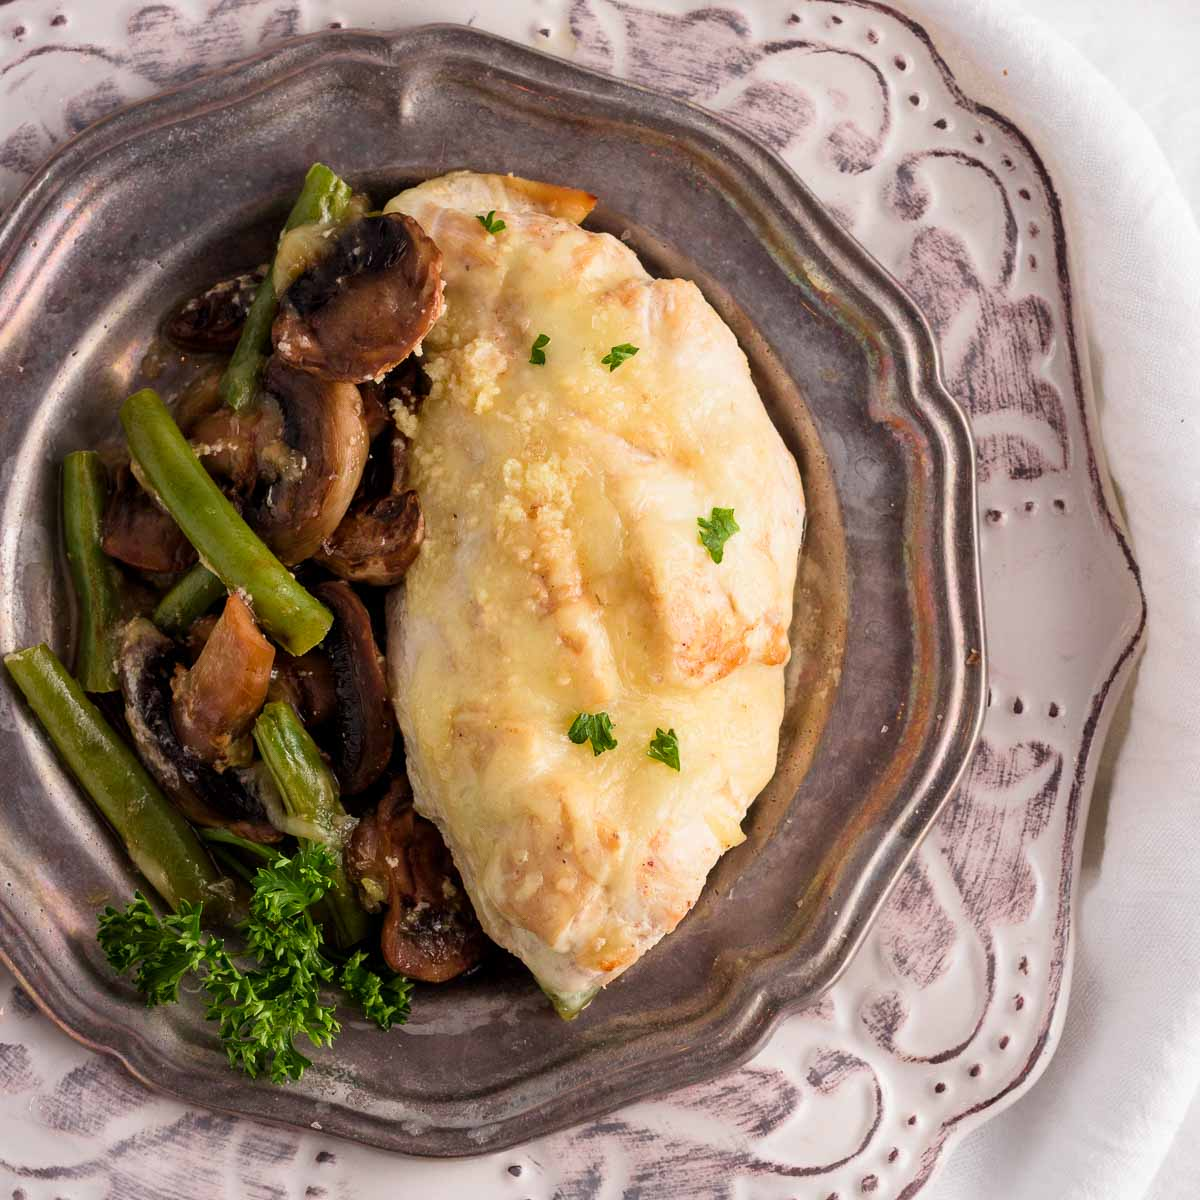 chicken brest and mushrooms & green beans in a creamy sauce.